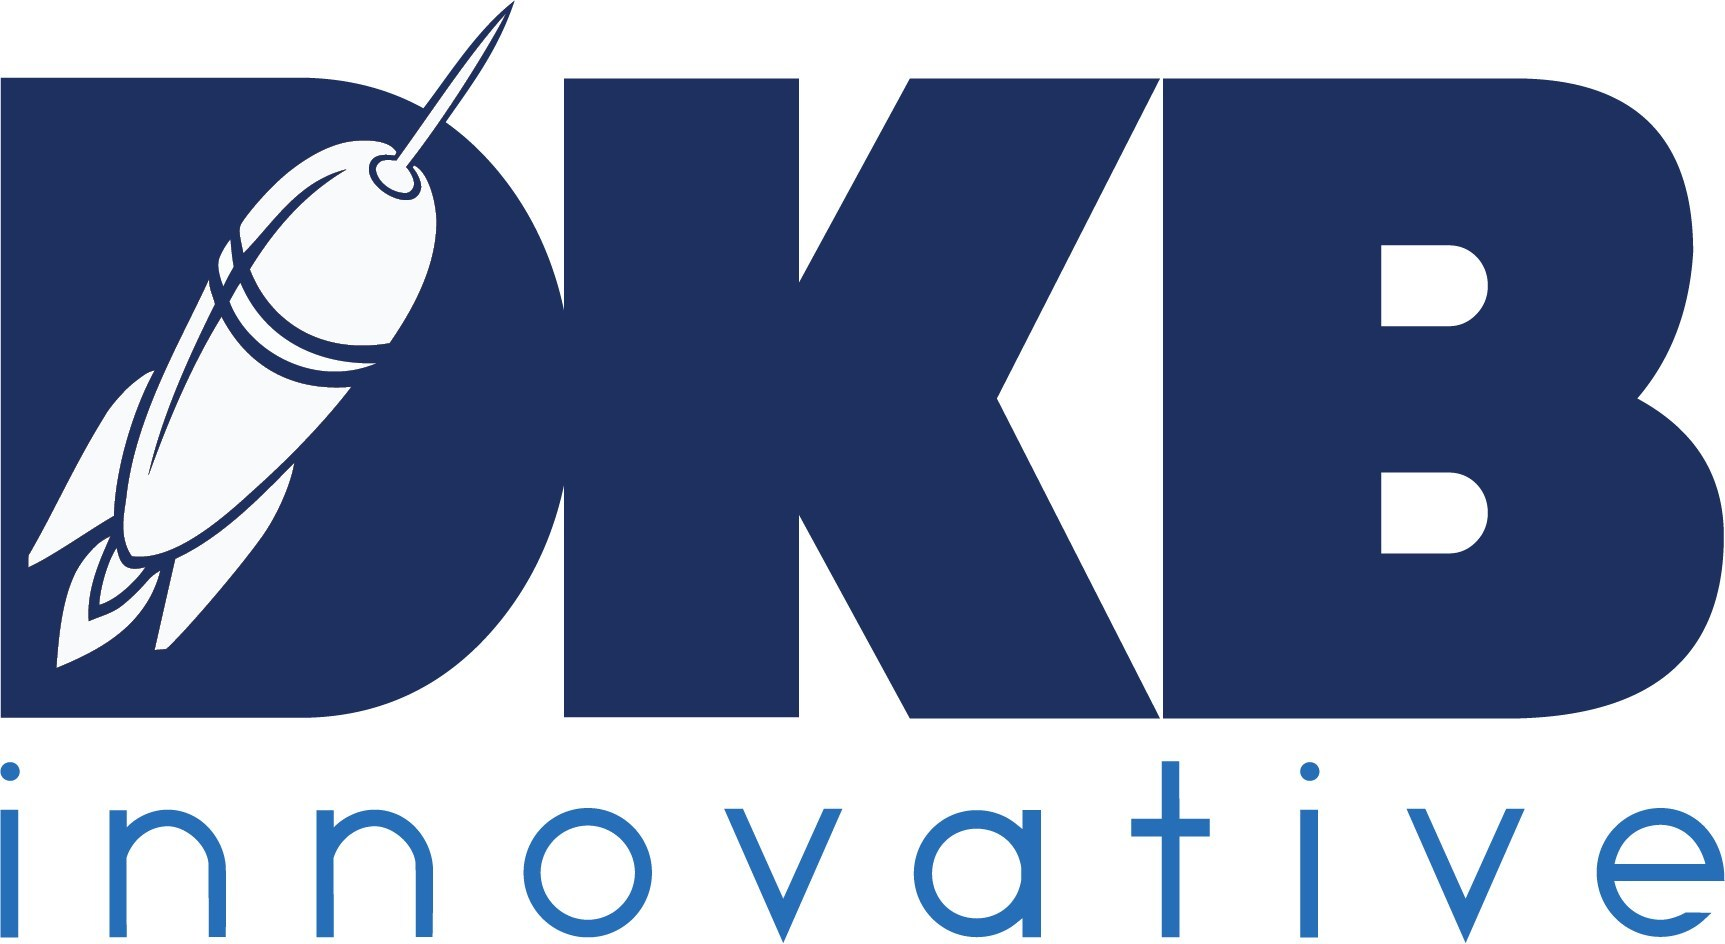 DKBinnovative